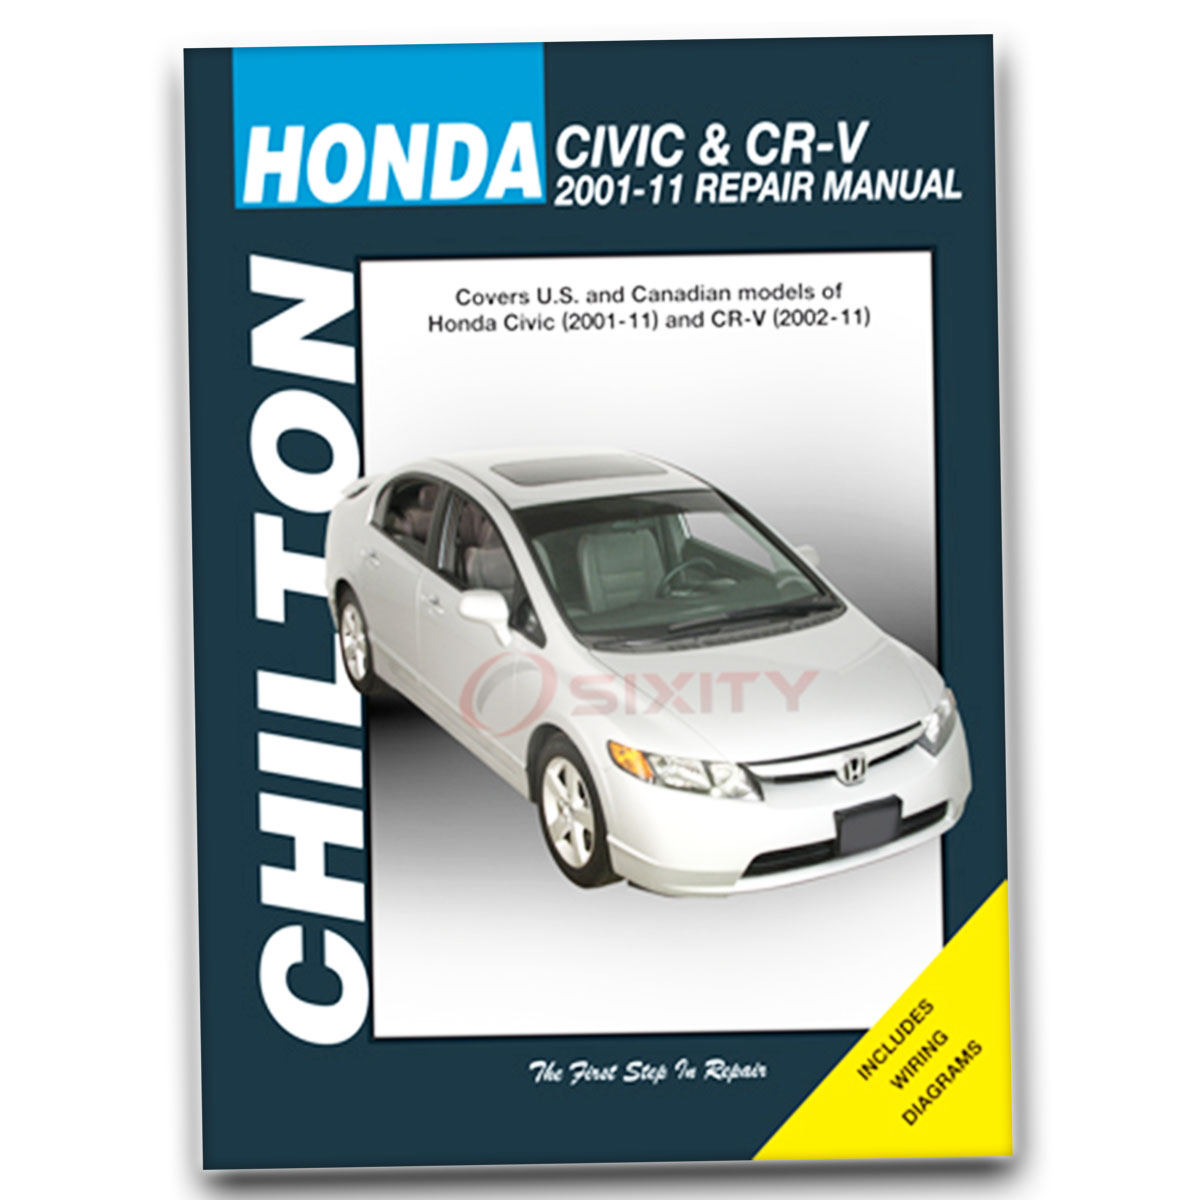 2001 Honda Civic Dx Repair Manual Basic Instruction 2002 Mazda Millenia Timing Belt Chilton Hx Mugen Si Lx Hybrid Gx Value Rh Ebay Com